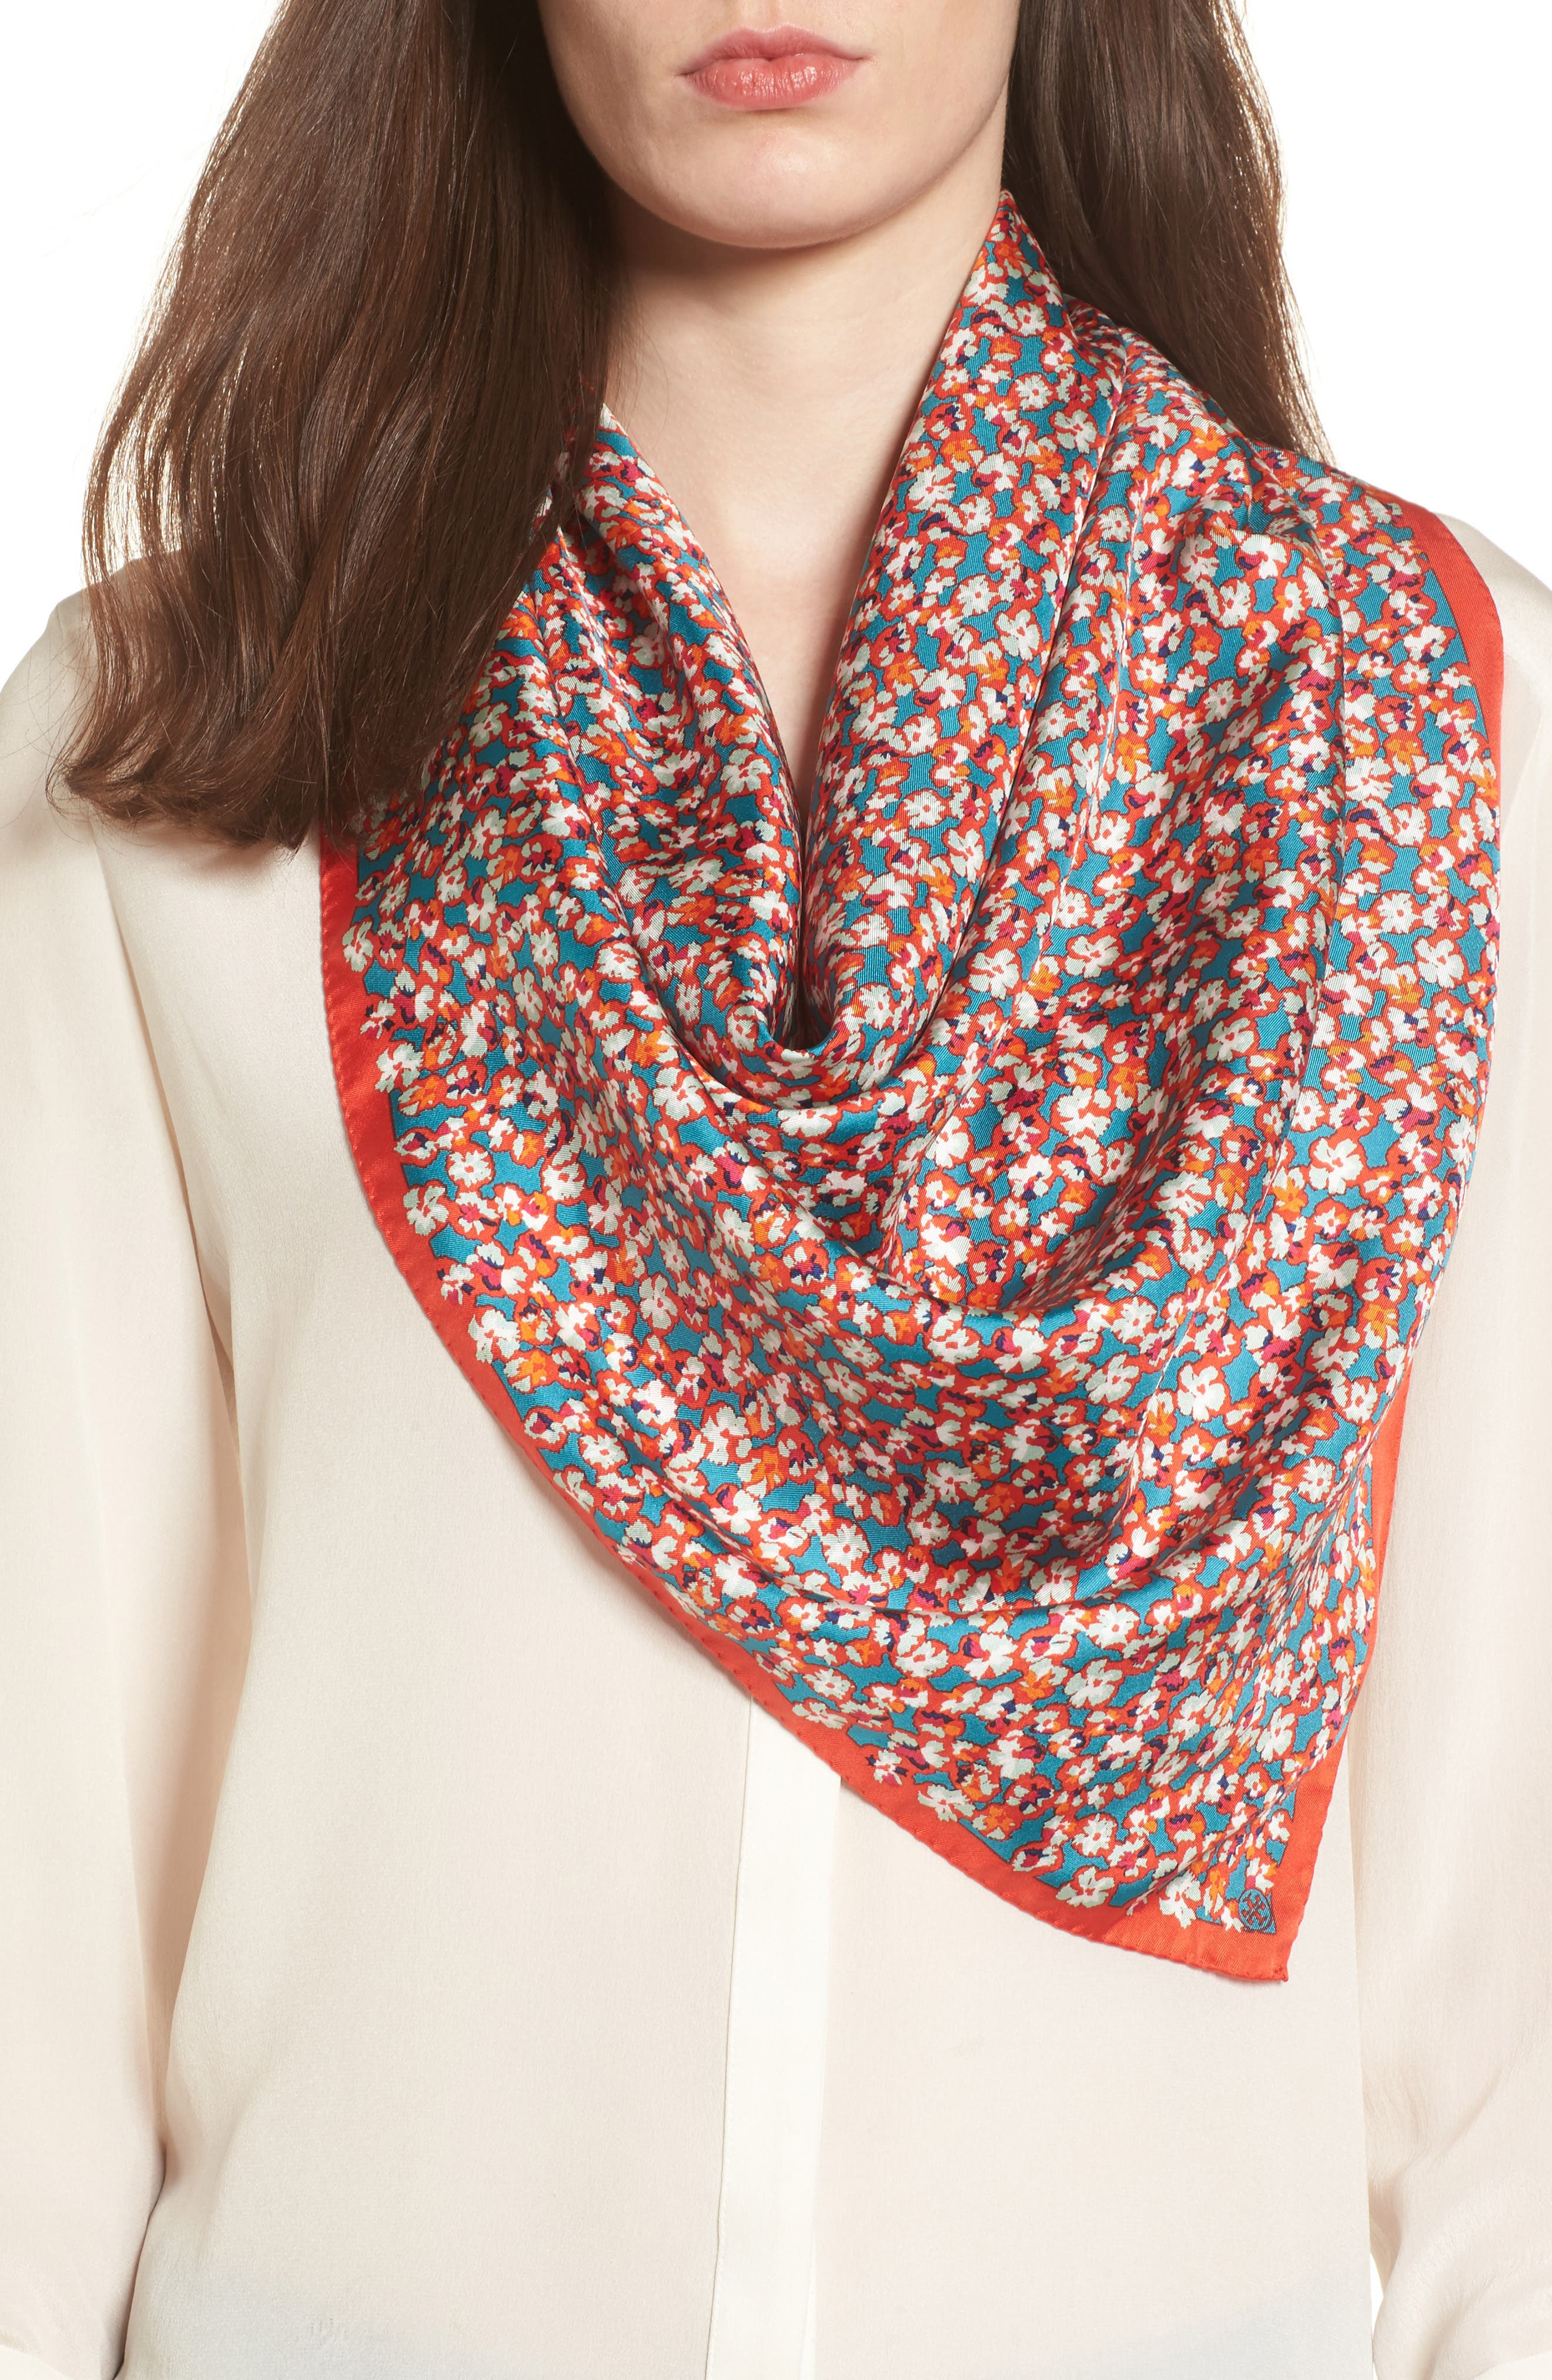 Carnation Silk Square Scarf,                             Main thumbnail 1, color,                             Red